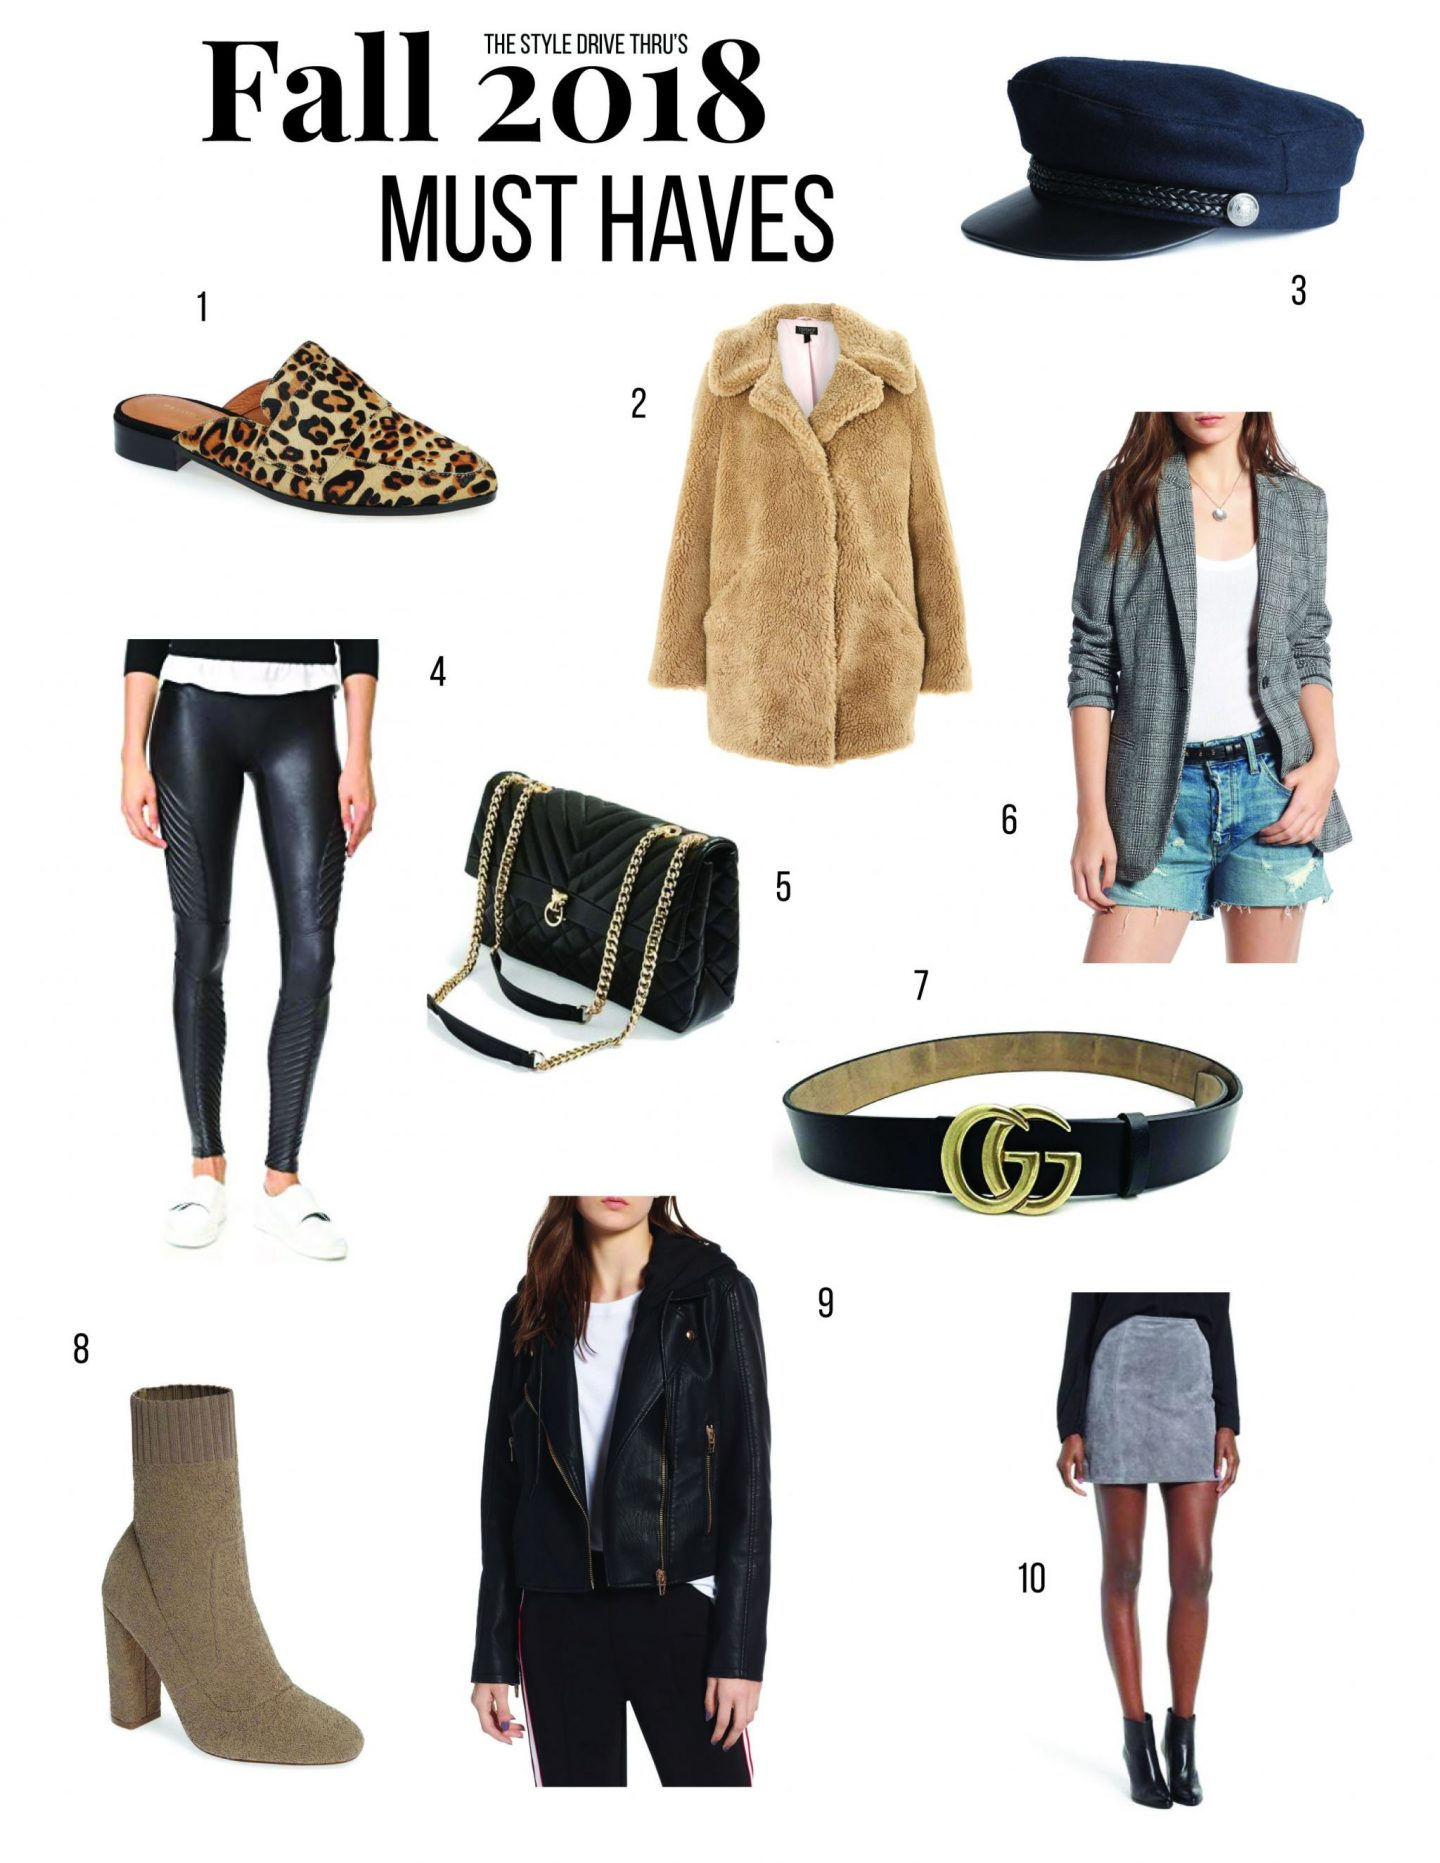 Must Haves for Fall 2018 – The Style